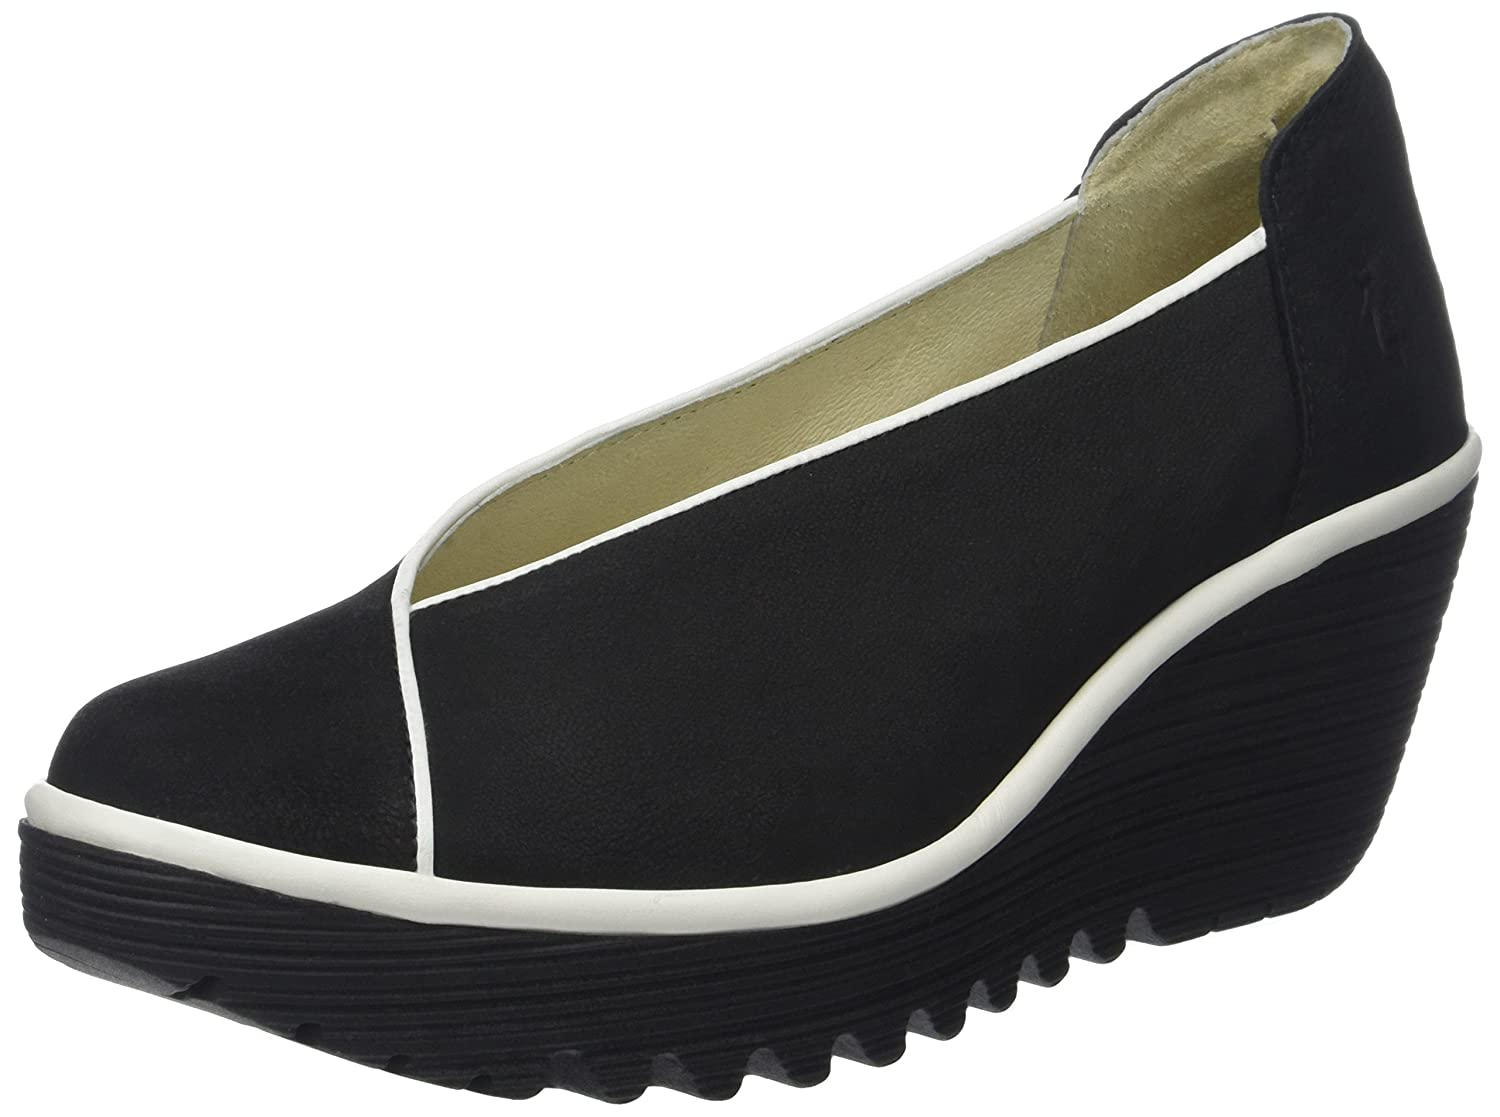 FLY London Pumps, Damen Yuca839fly Pumps, London Blau Schwarz (schwarz/OffWeiß) 1a4829